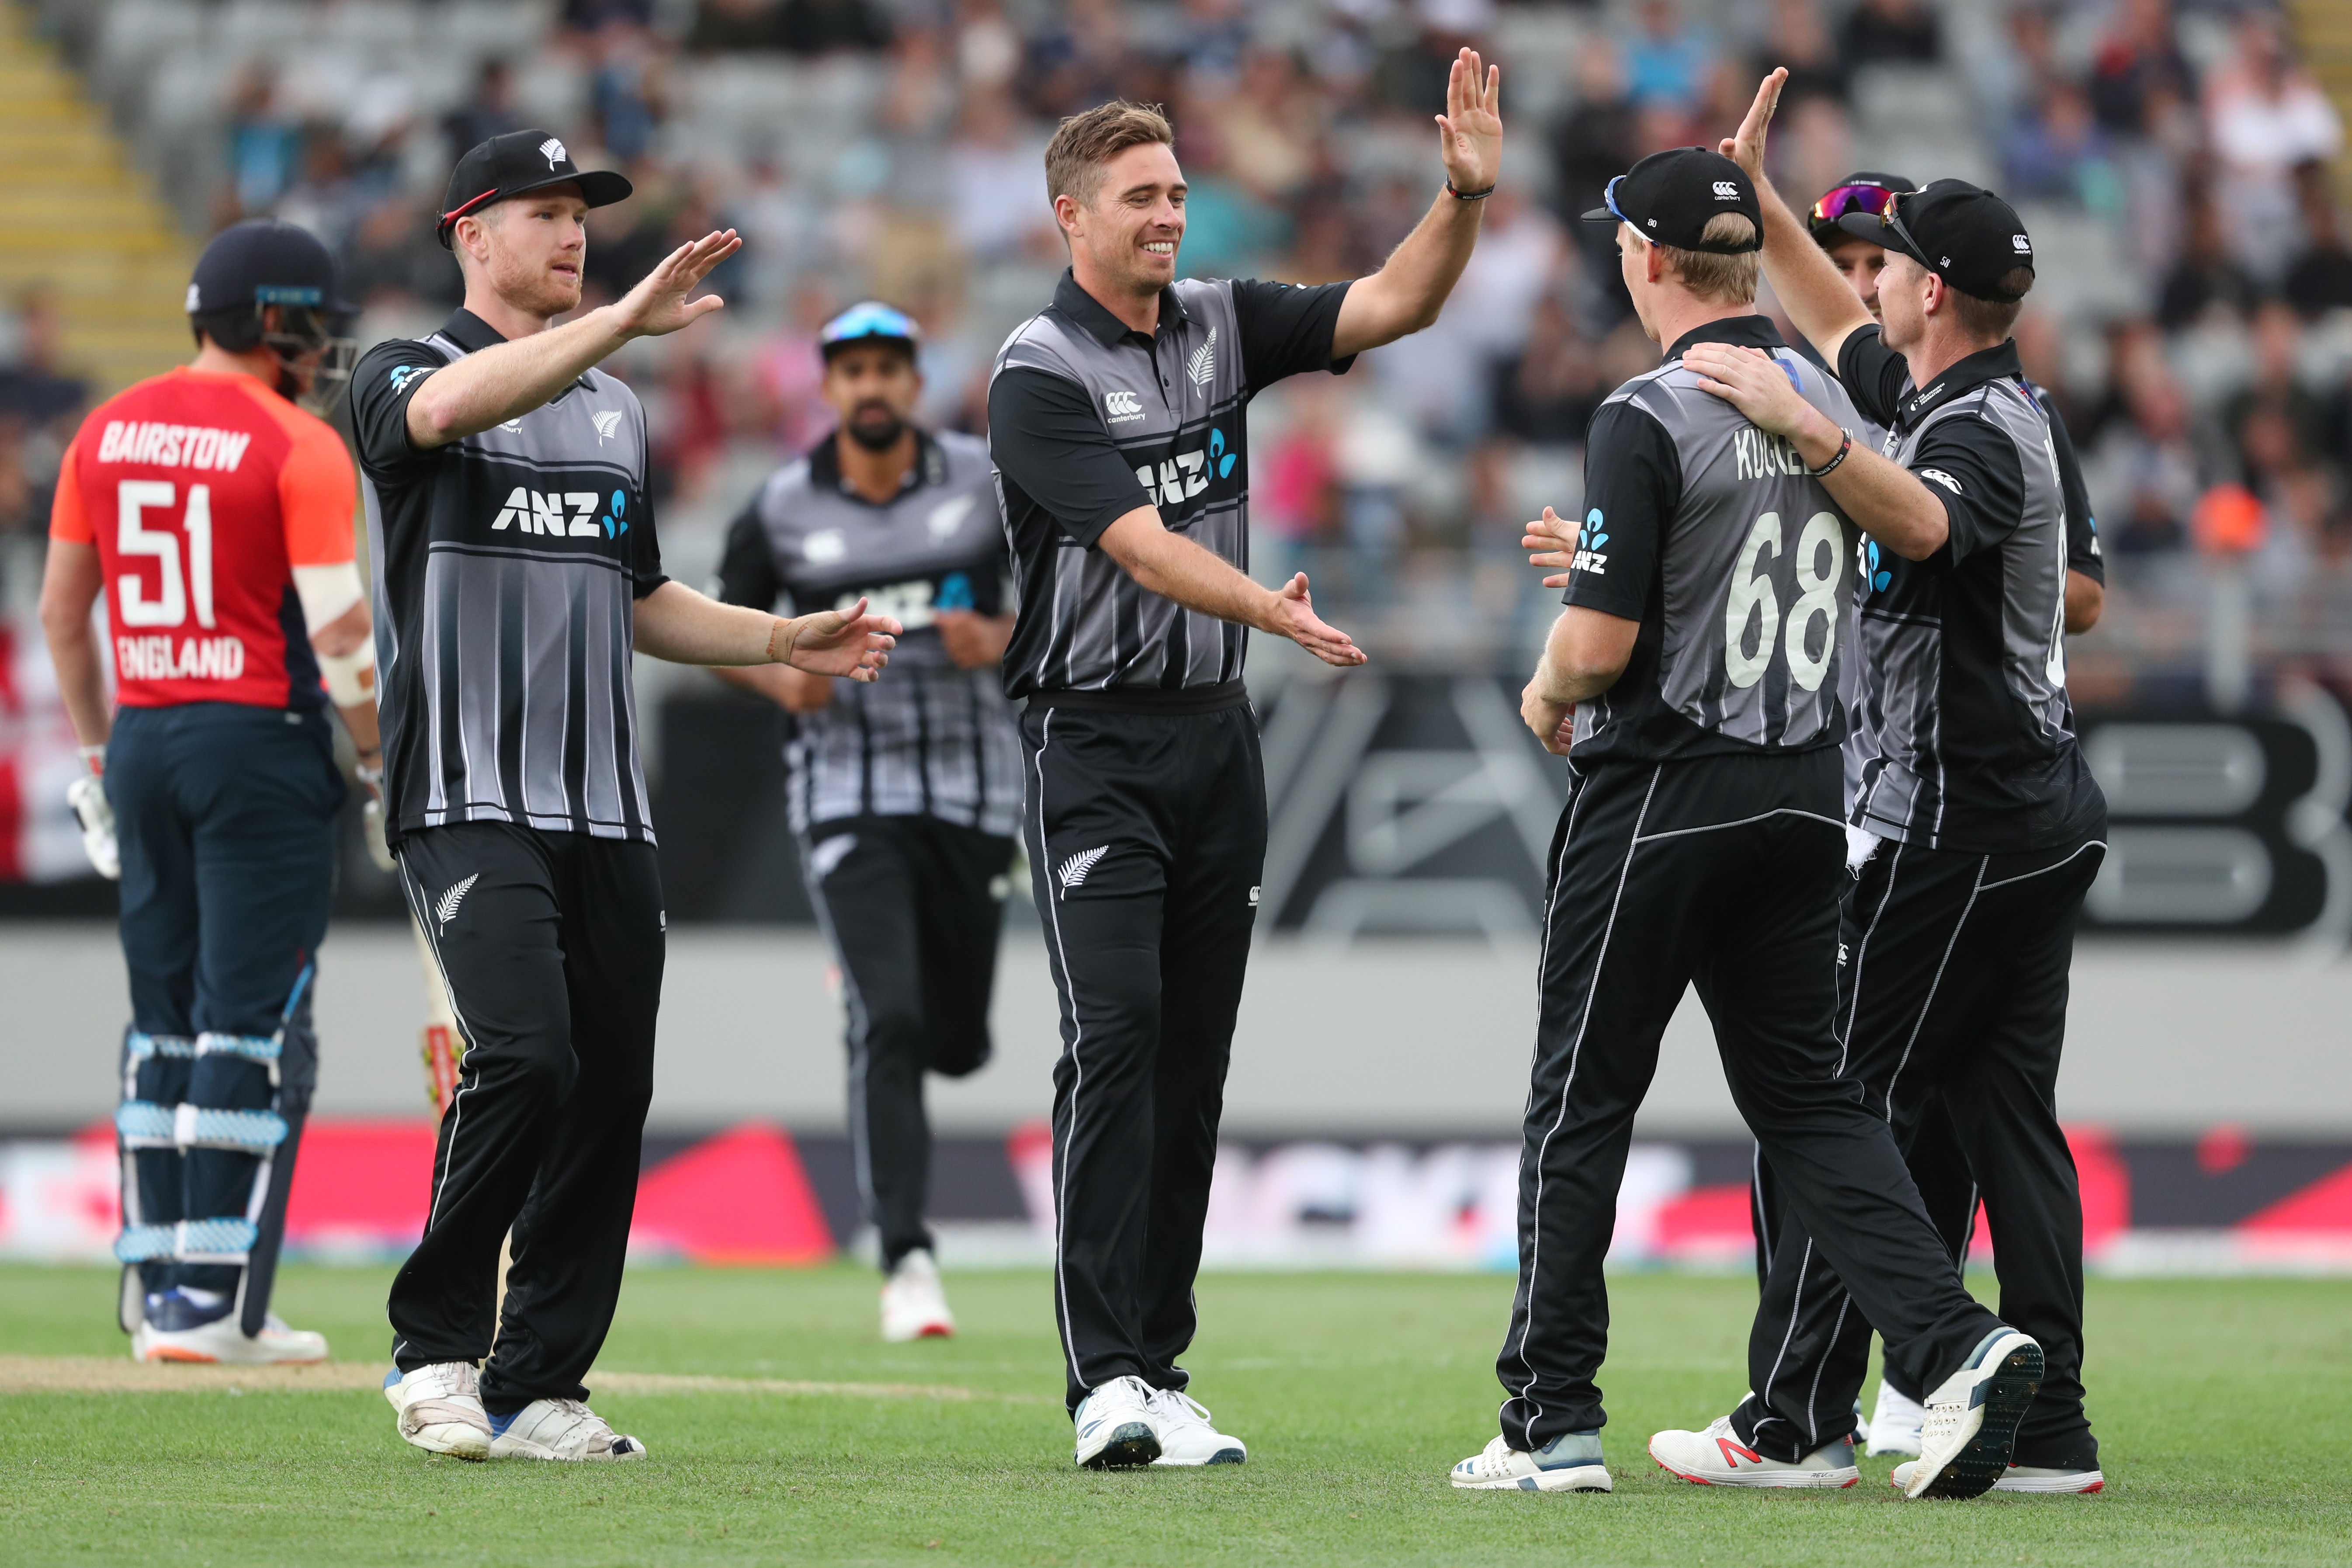 Tim Southee, New Zealand, England